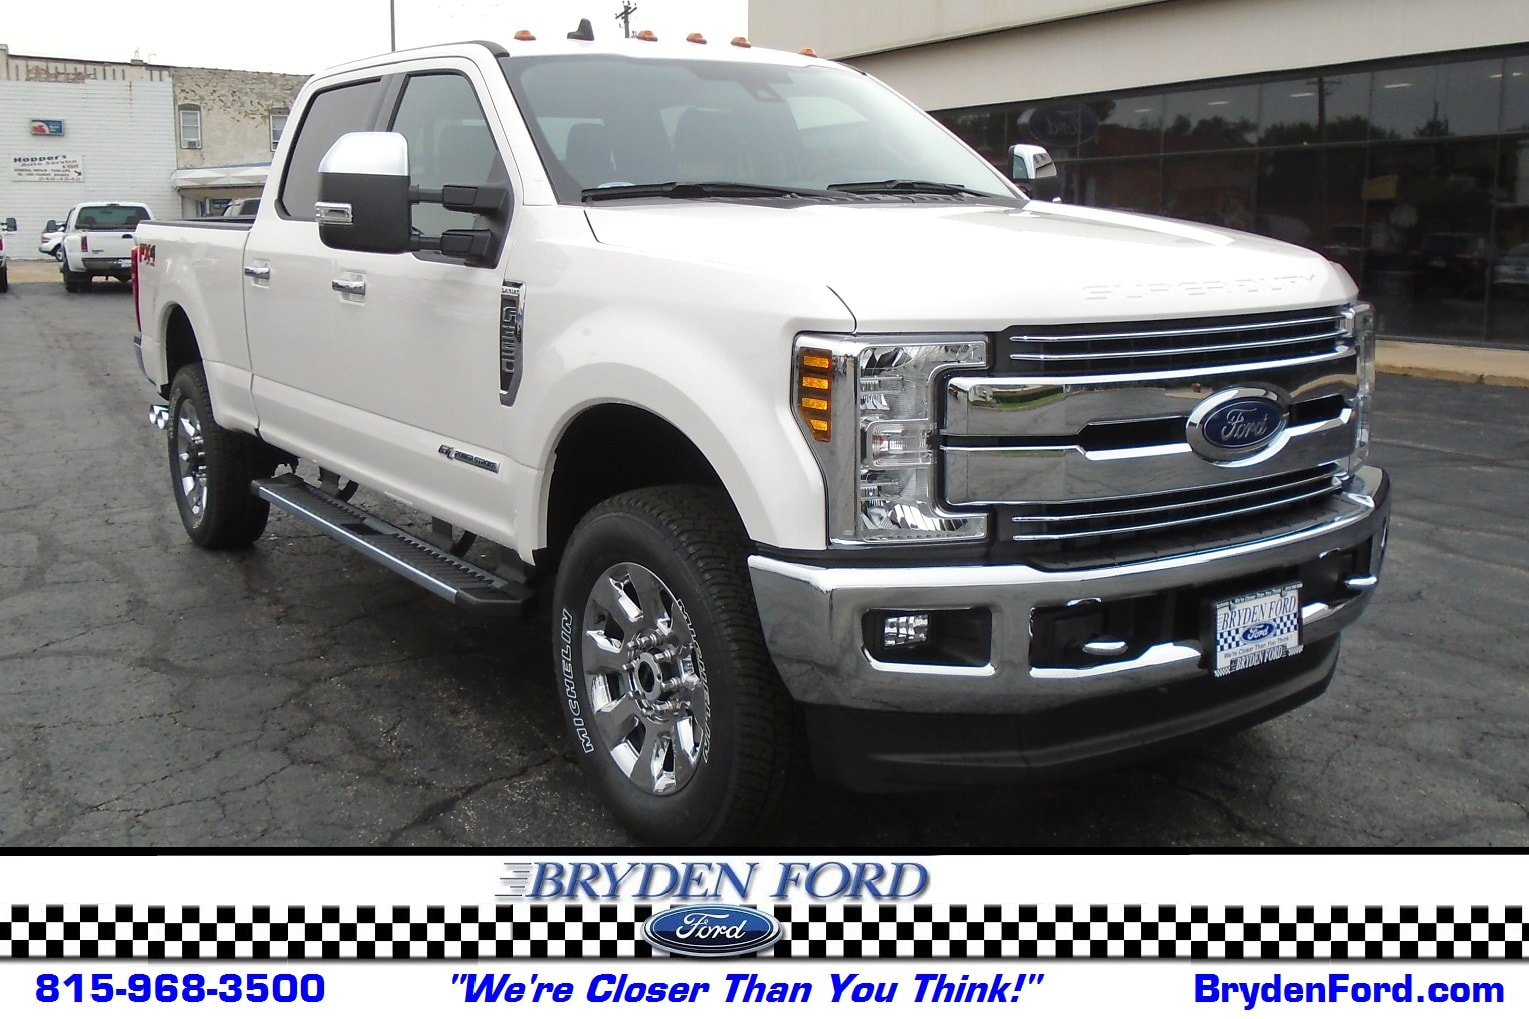 2019 Ford F350 Super Duty Lariat 4X4 6.5' Bed Truck